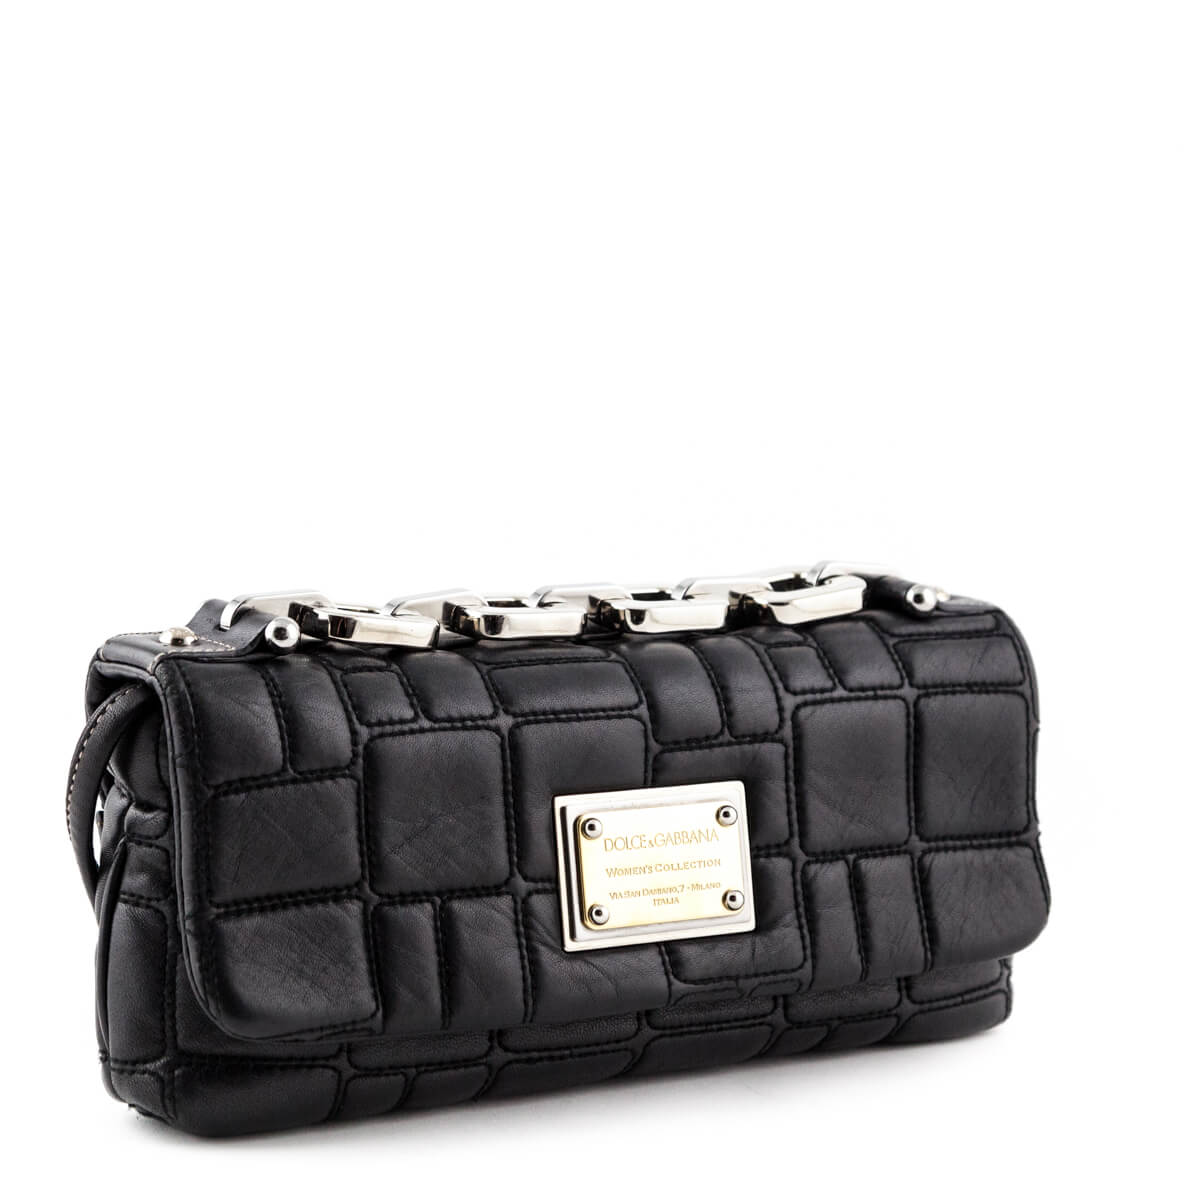 6bd25cccab ... Dolce   Gabbana Black Miss Deco Shoulder Bag - LOVE that BAG - Preowned  Authentic Designer ...